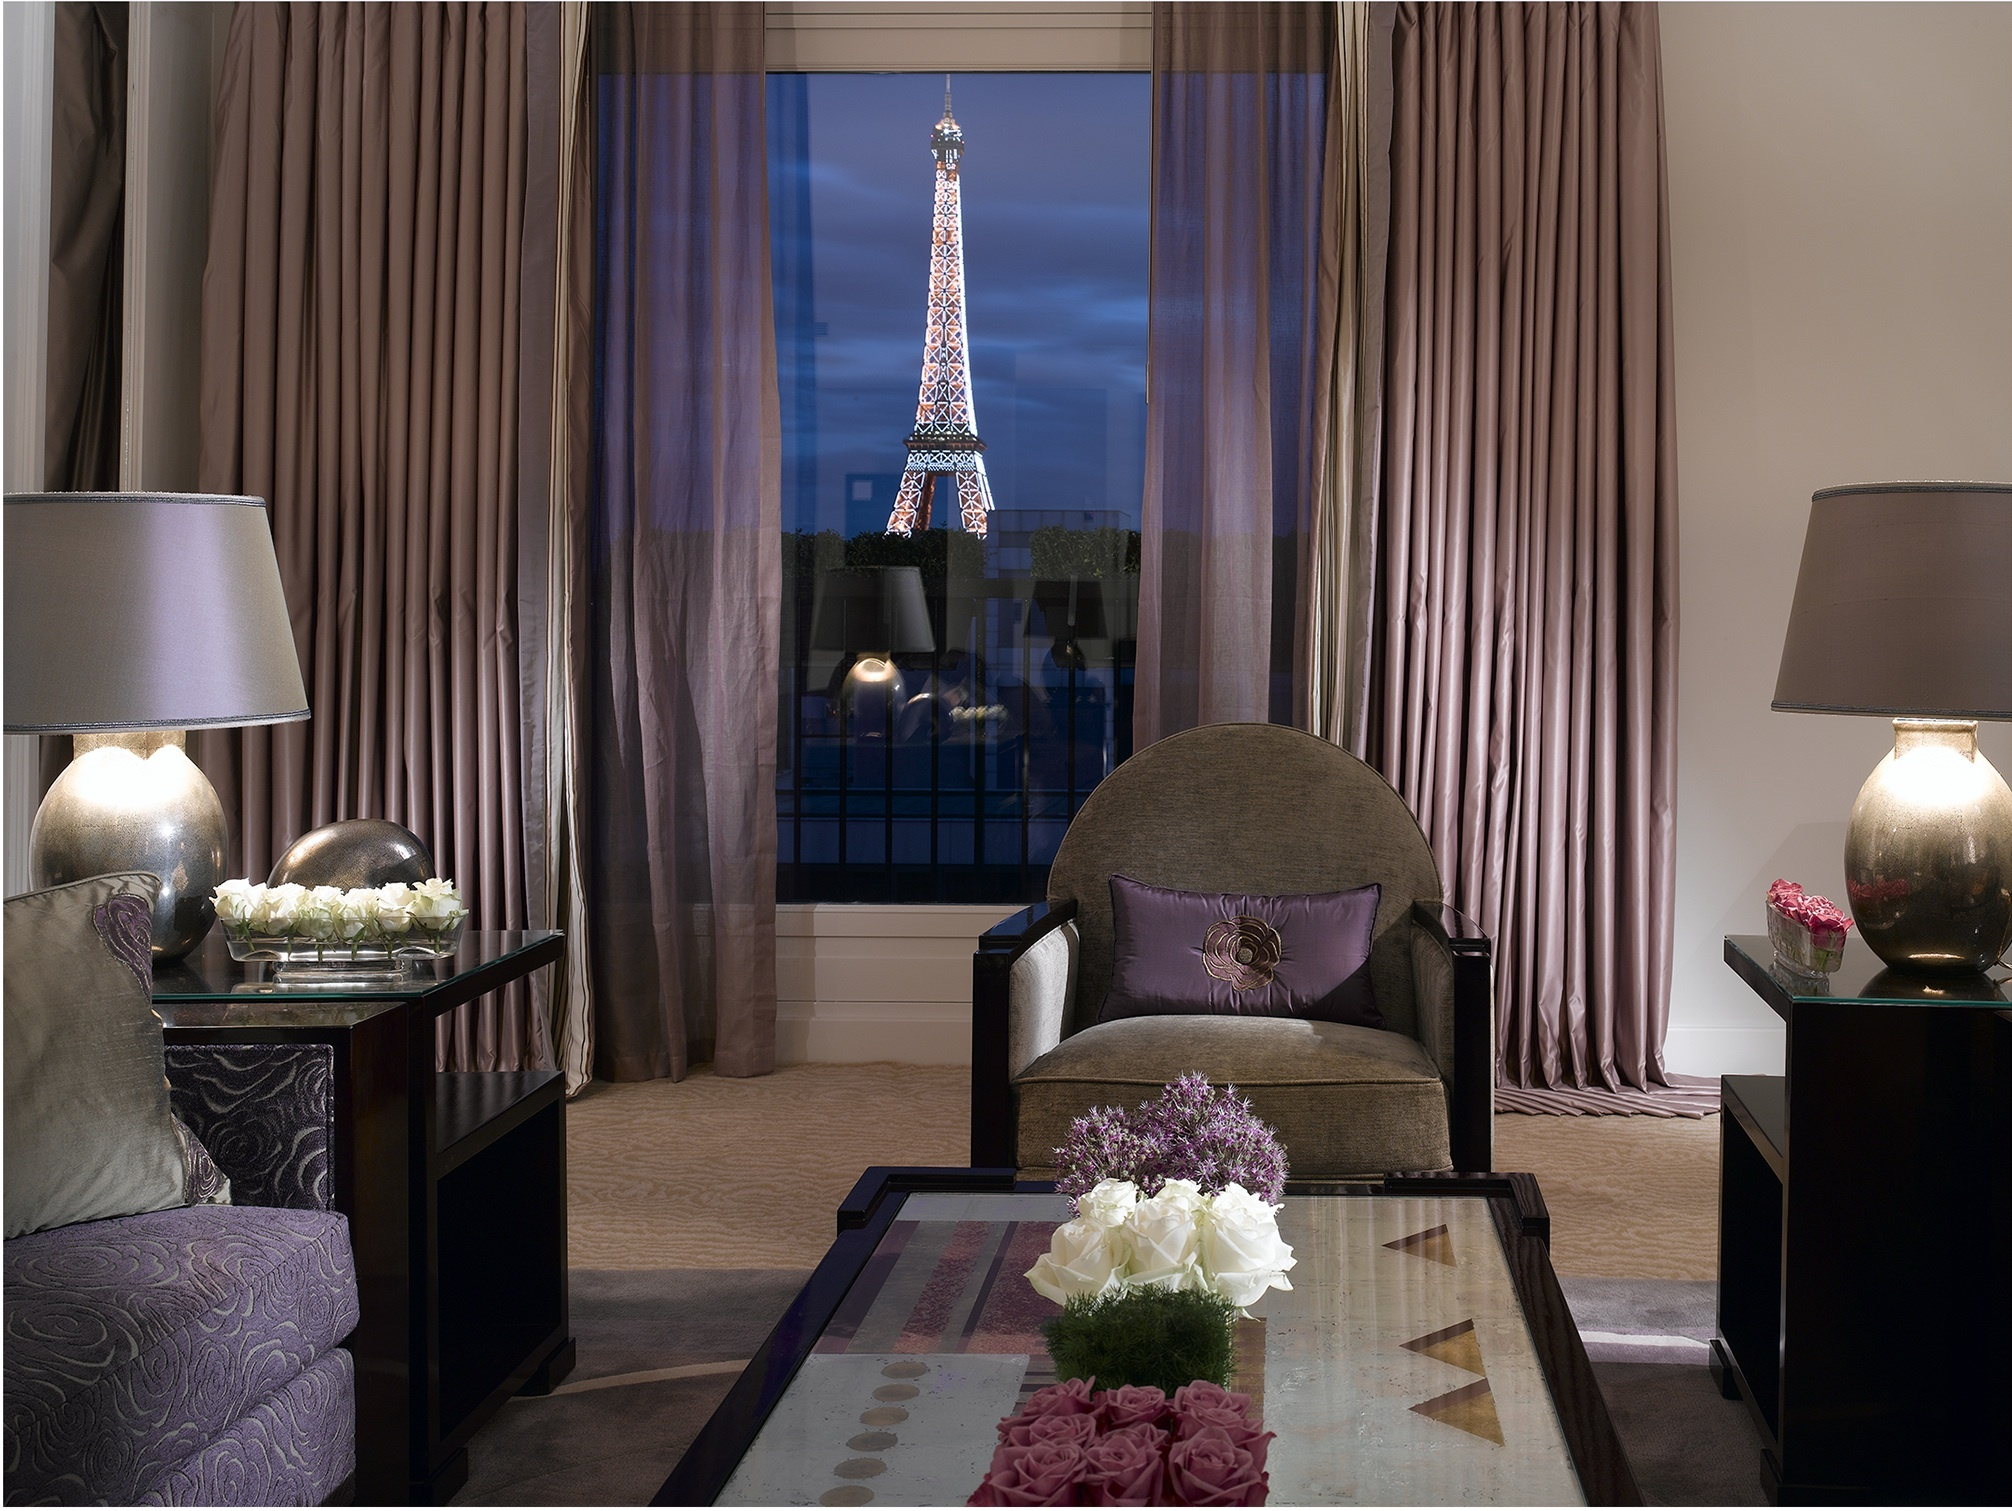 The Best Hotel Rooms In Paris Hotels